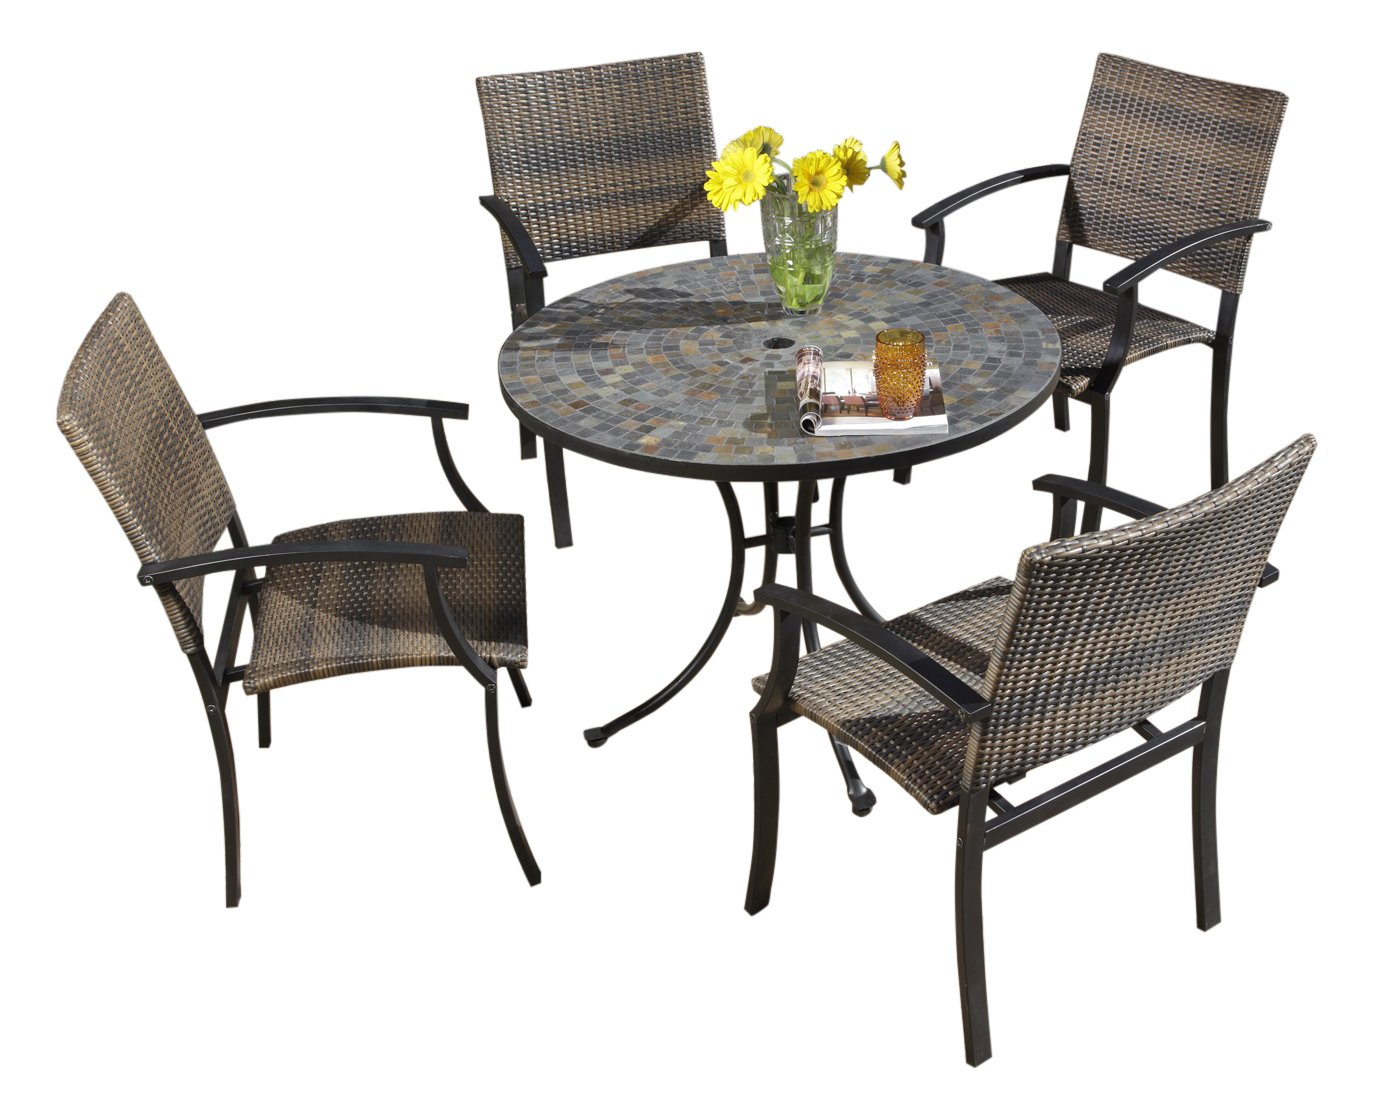 Home Styles Stone Harbor Black Five-piece Outdoor Dining Set with Table, Four Newport Arm Chairs, Stone Table Top, Umbrella Hole, and Synthetic Weave Seats